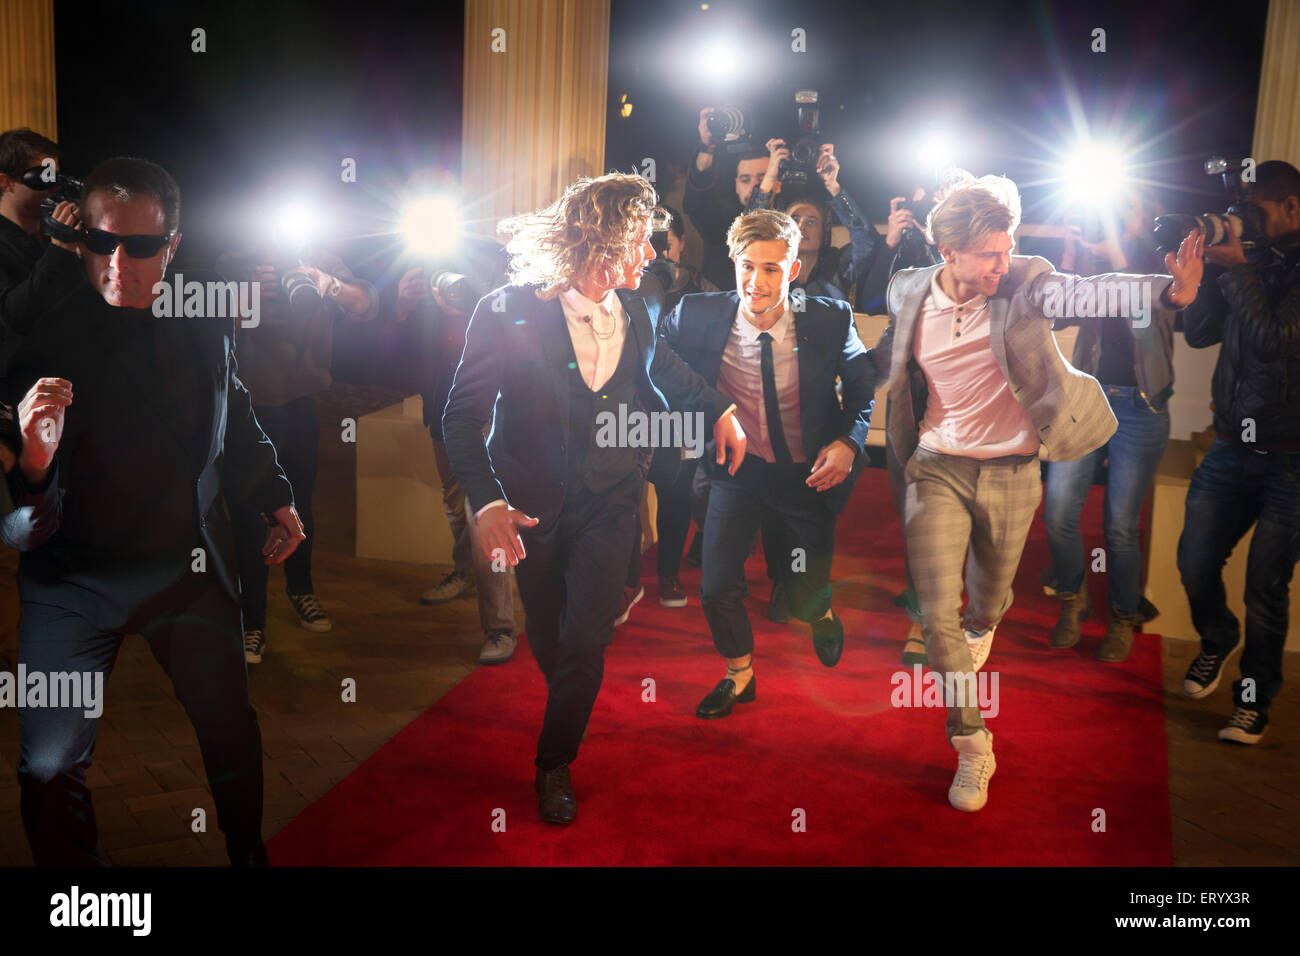 Enthusiastic Celebrities Arriving And Running From Paparazzi At Red